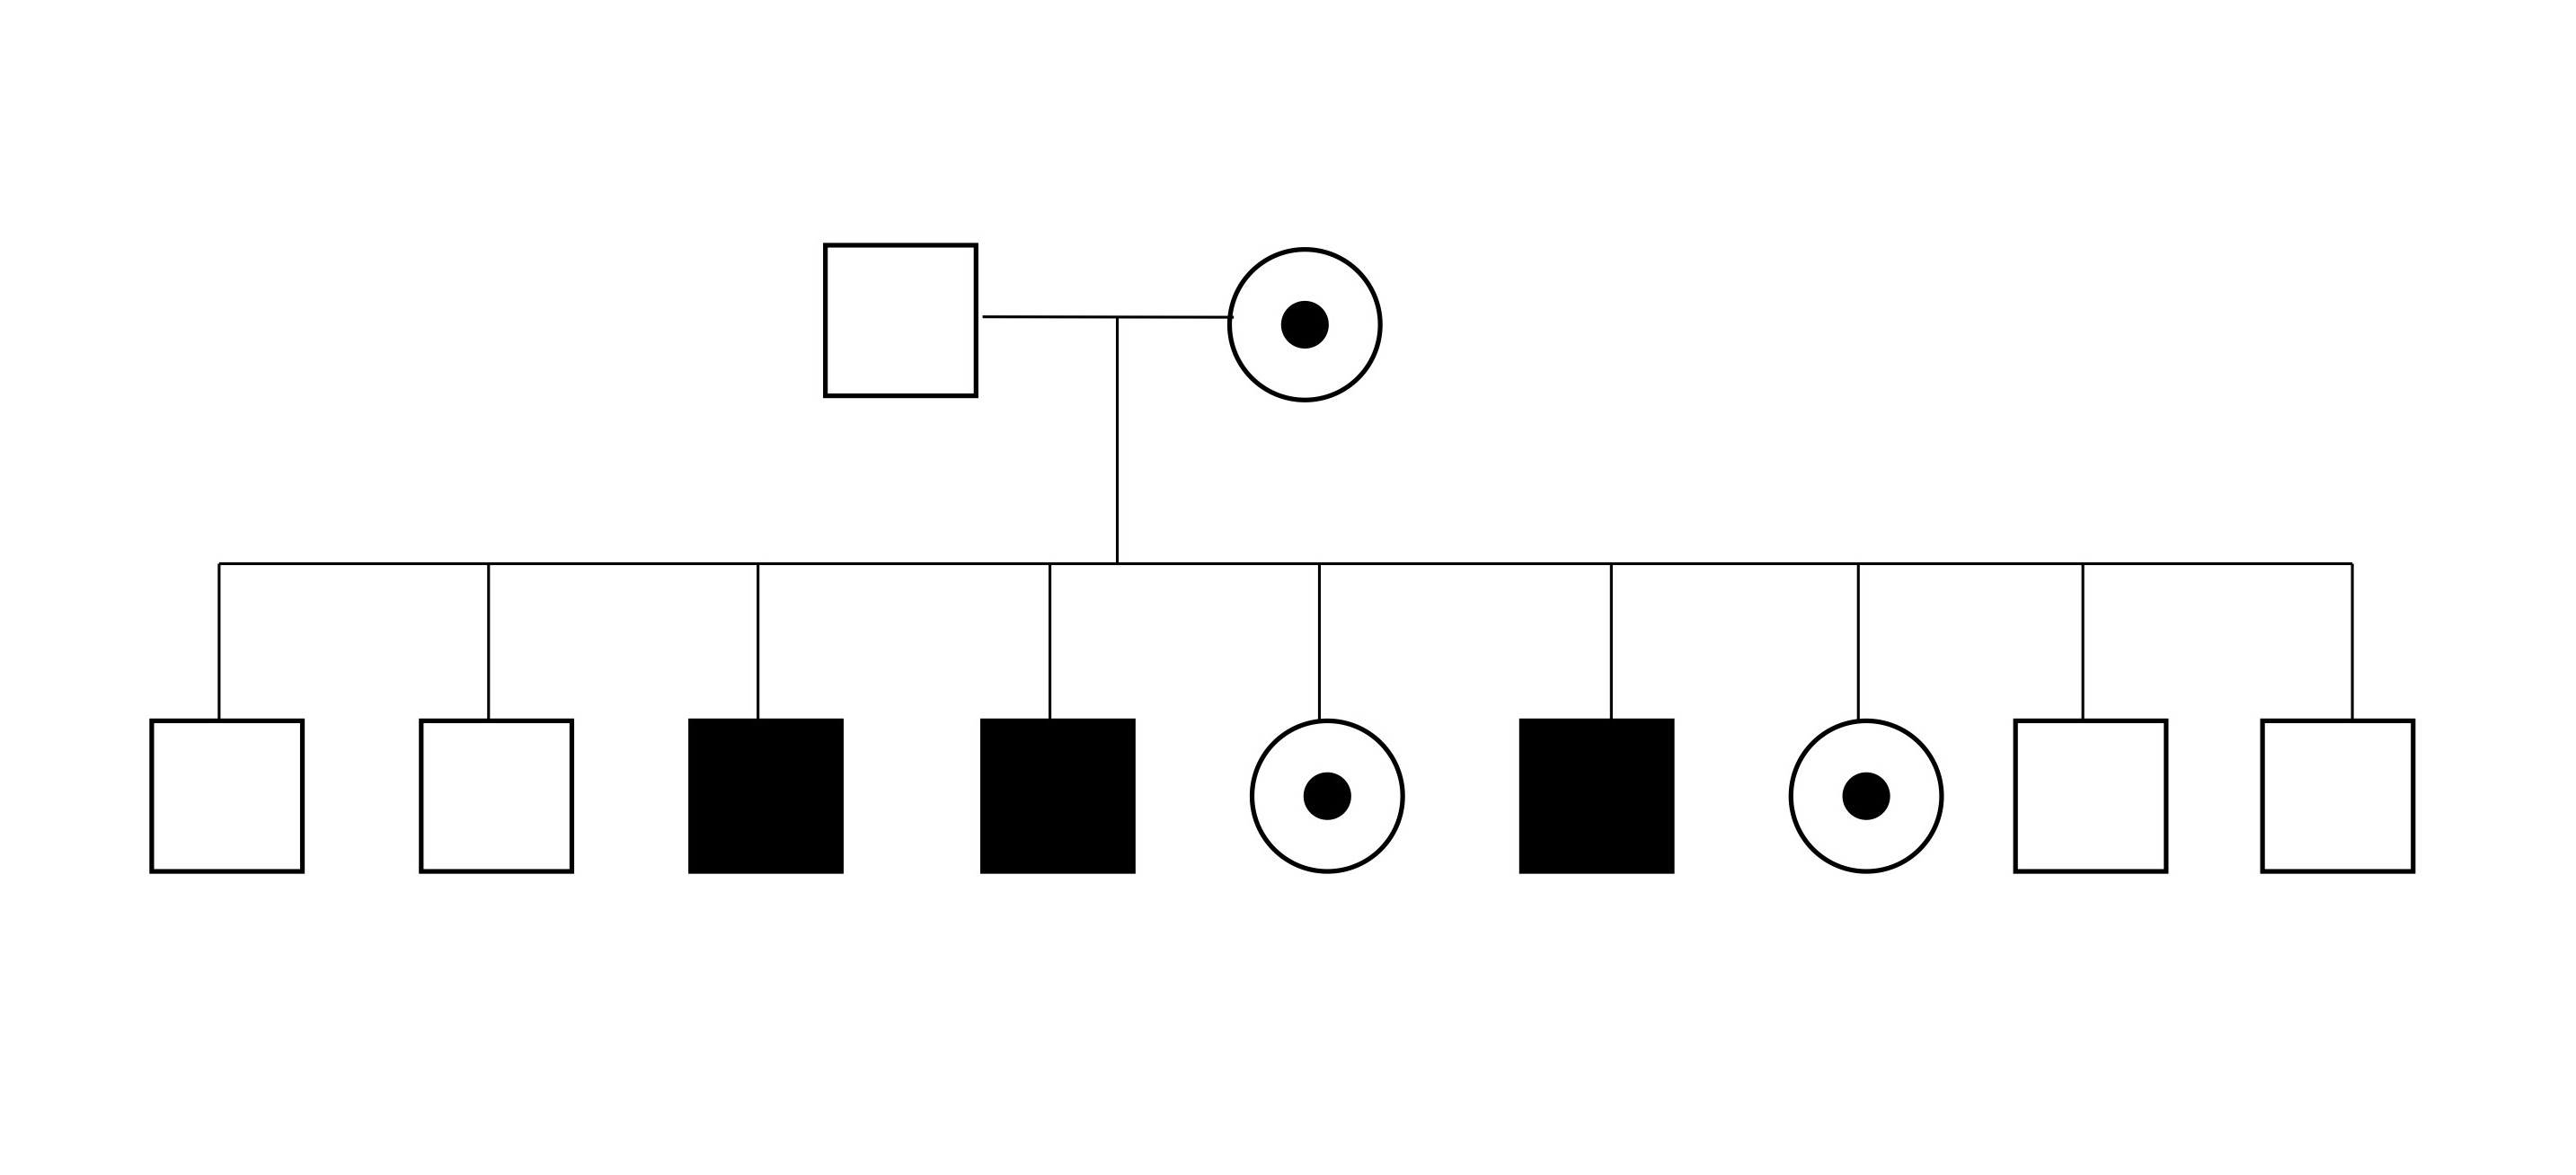 Figure 1: Choroideremia Pedigree